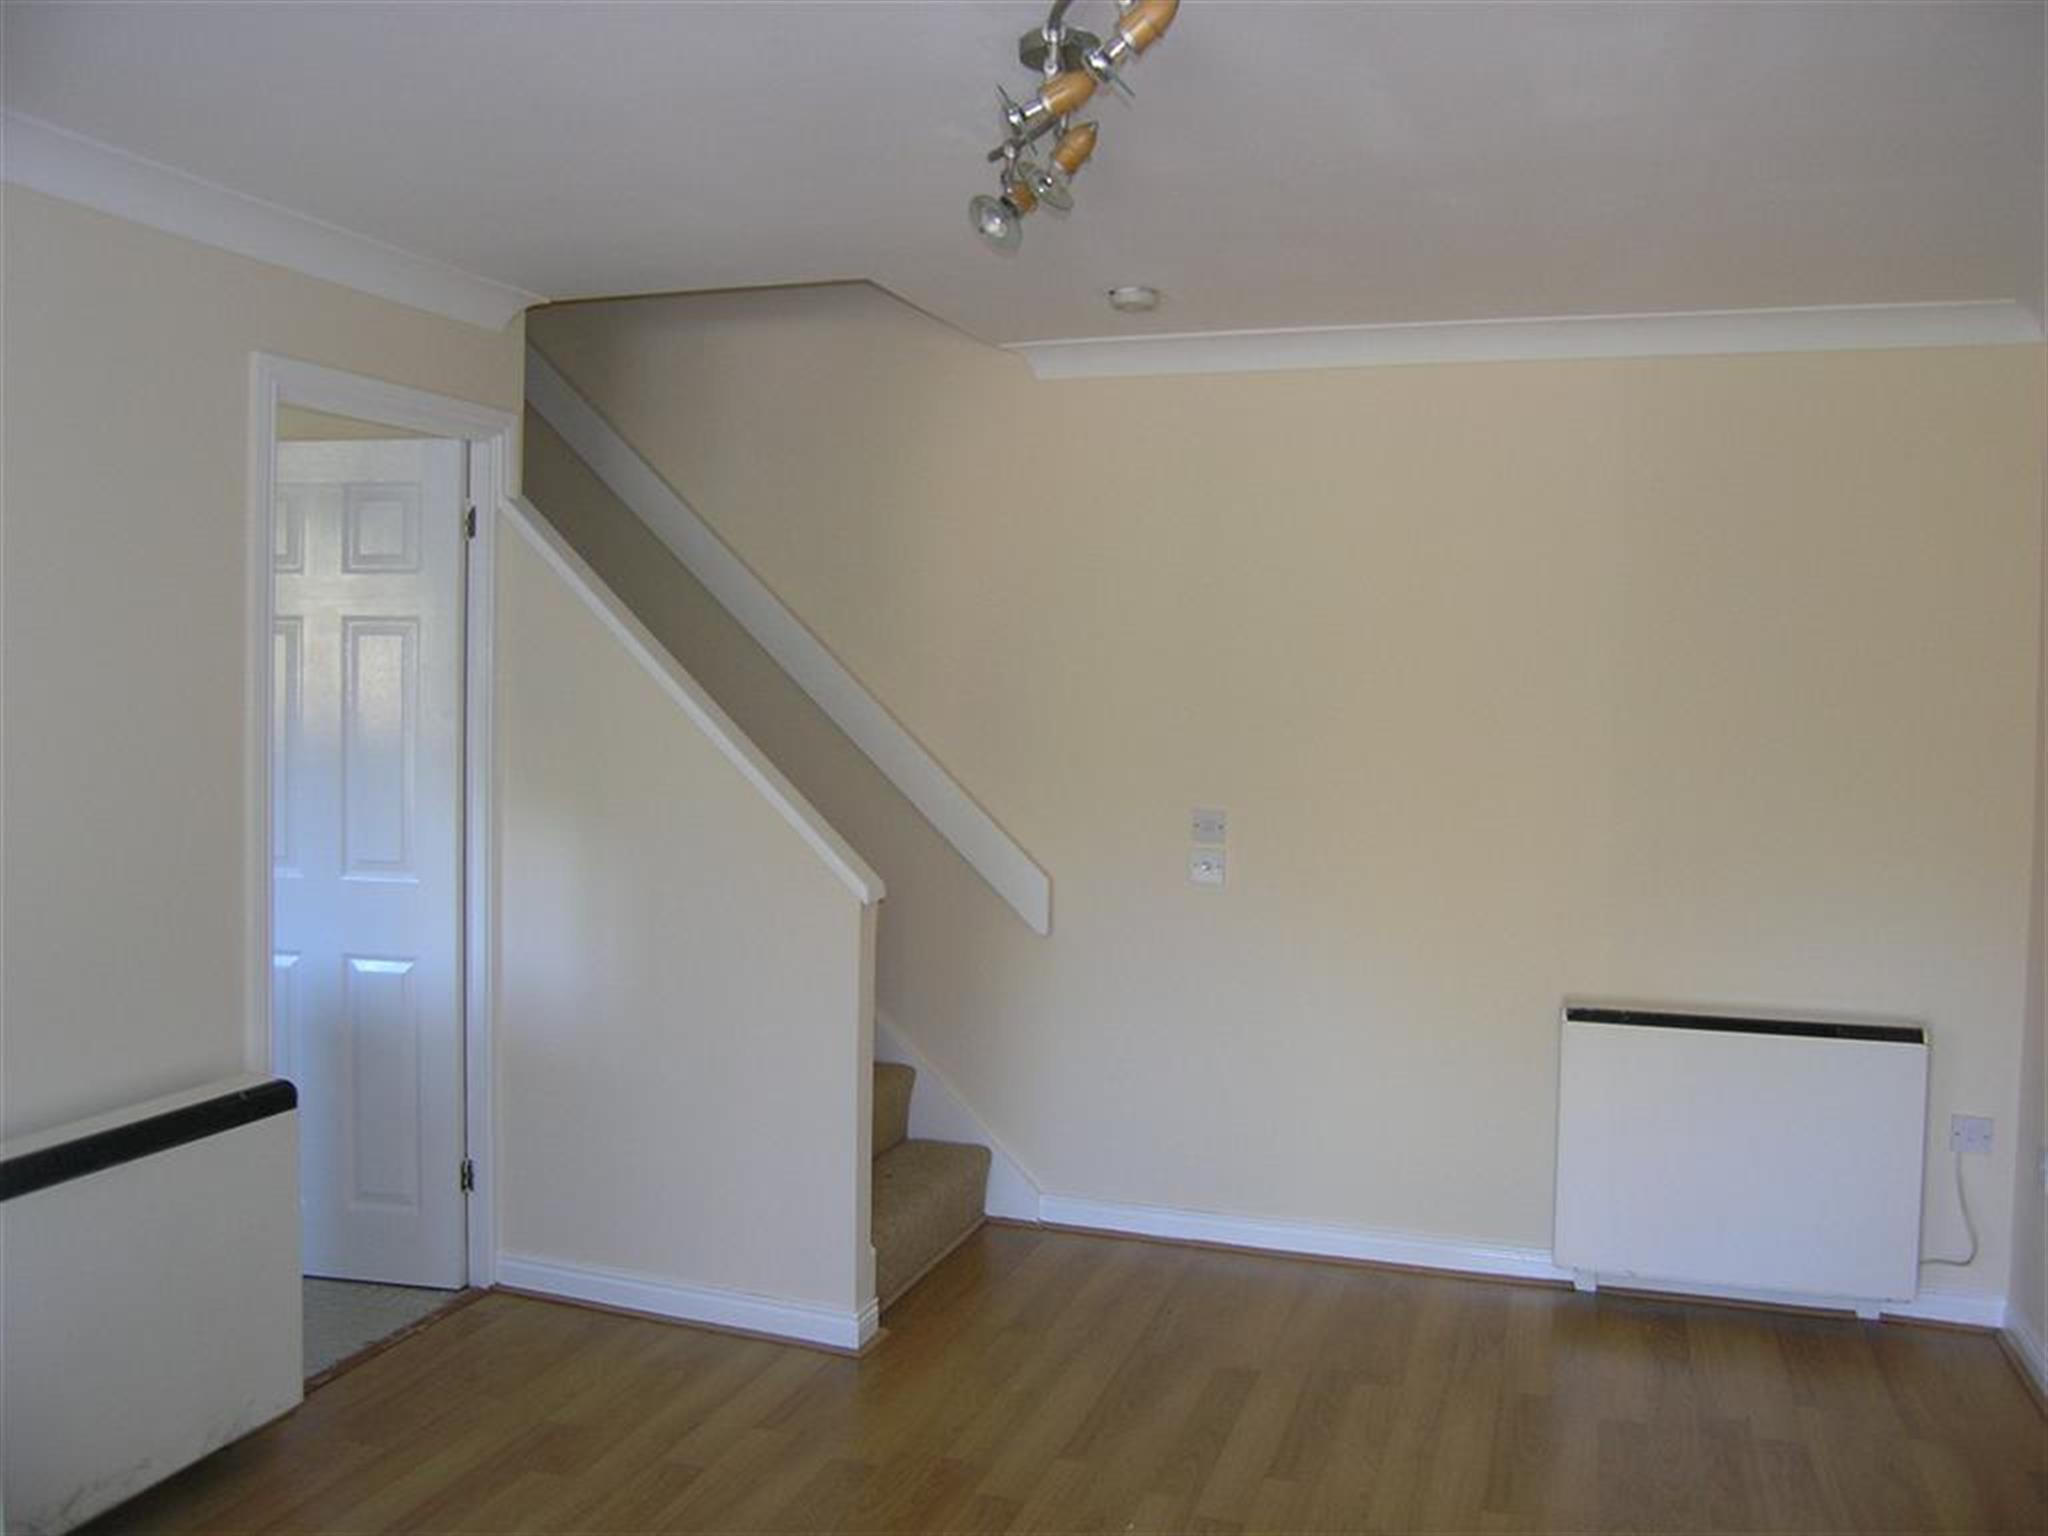 1 Bedroom House To Rent Barnum Court Swindon Sn2 2ap